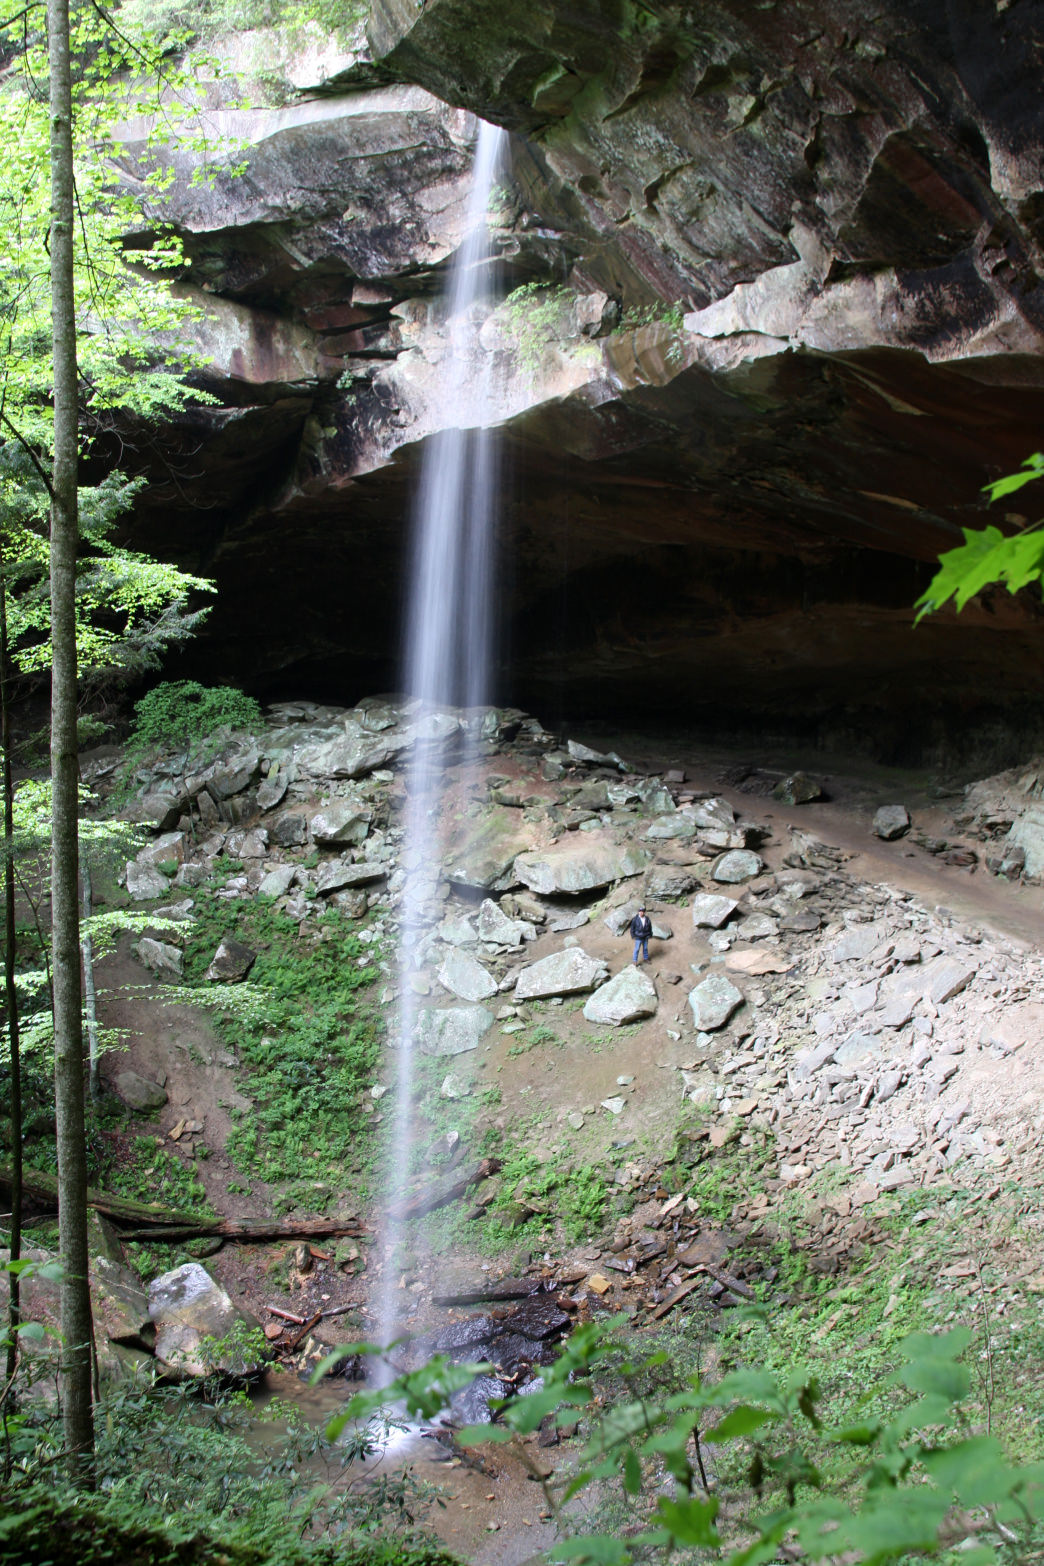 Yahoo Falls is the tallest waterfall in the state.